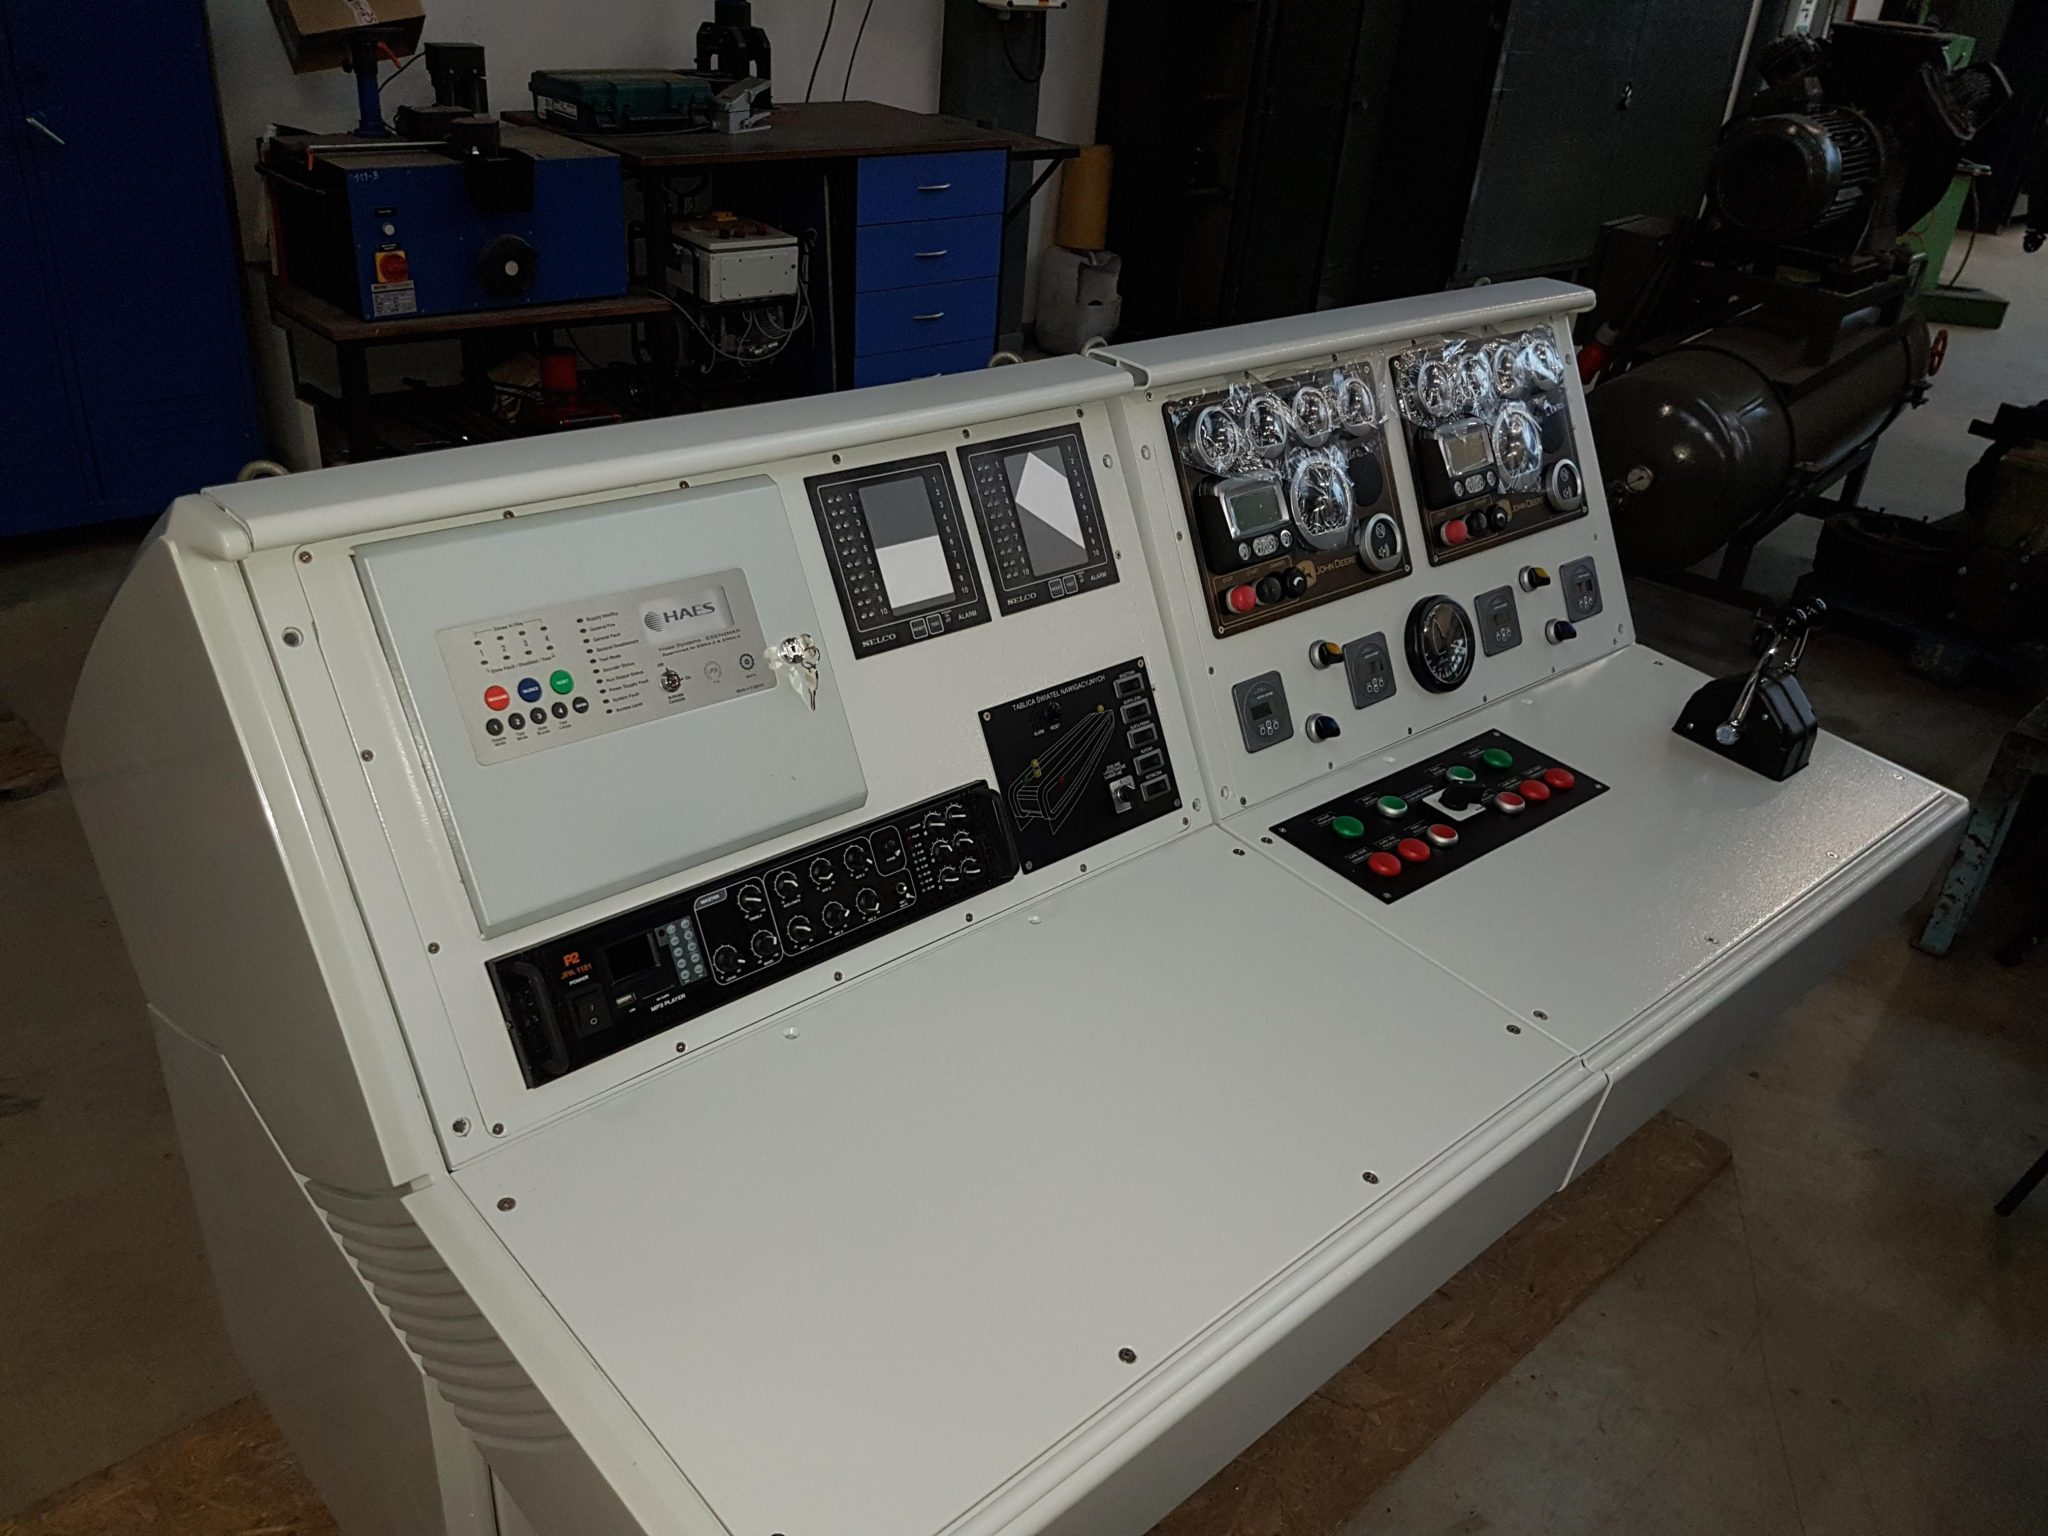 Esento Marine approved Fire Control Panel shipping